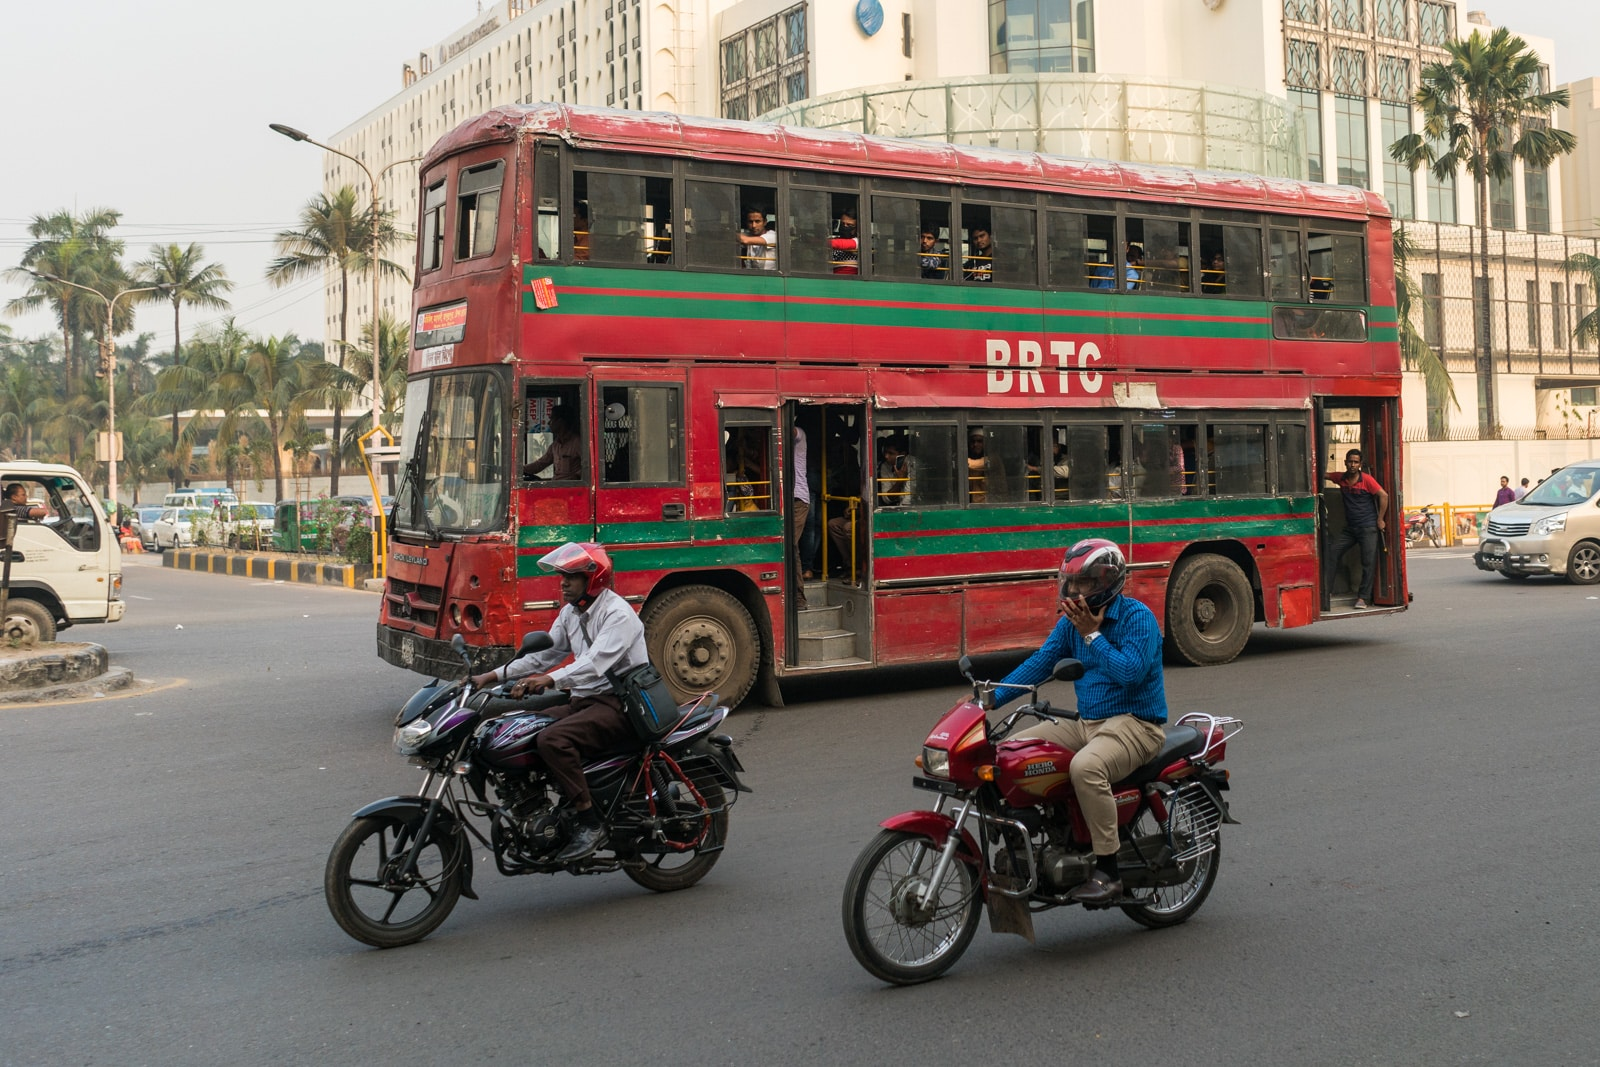 Backpacking in Bangladesh travel guide - Double decker bus in Dhaka - Lost With Purpose travel blog